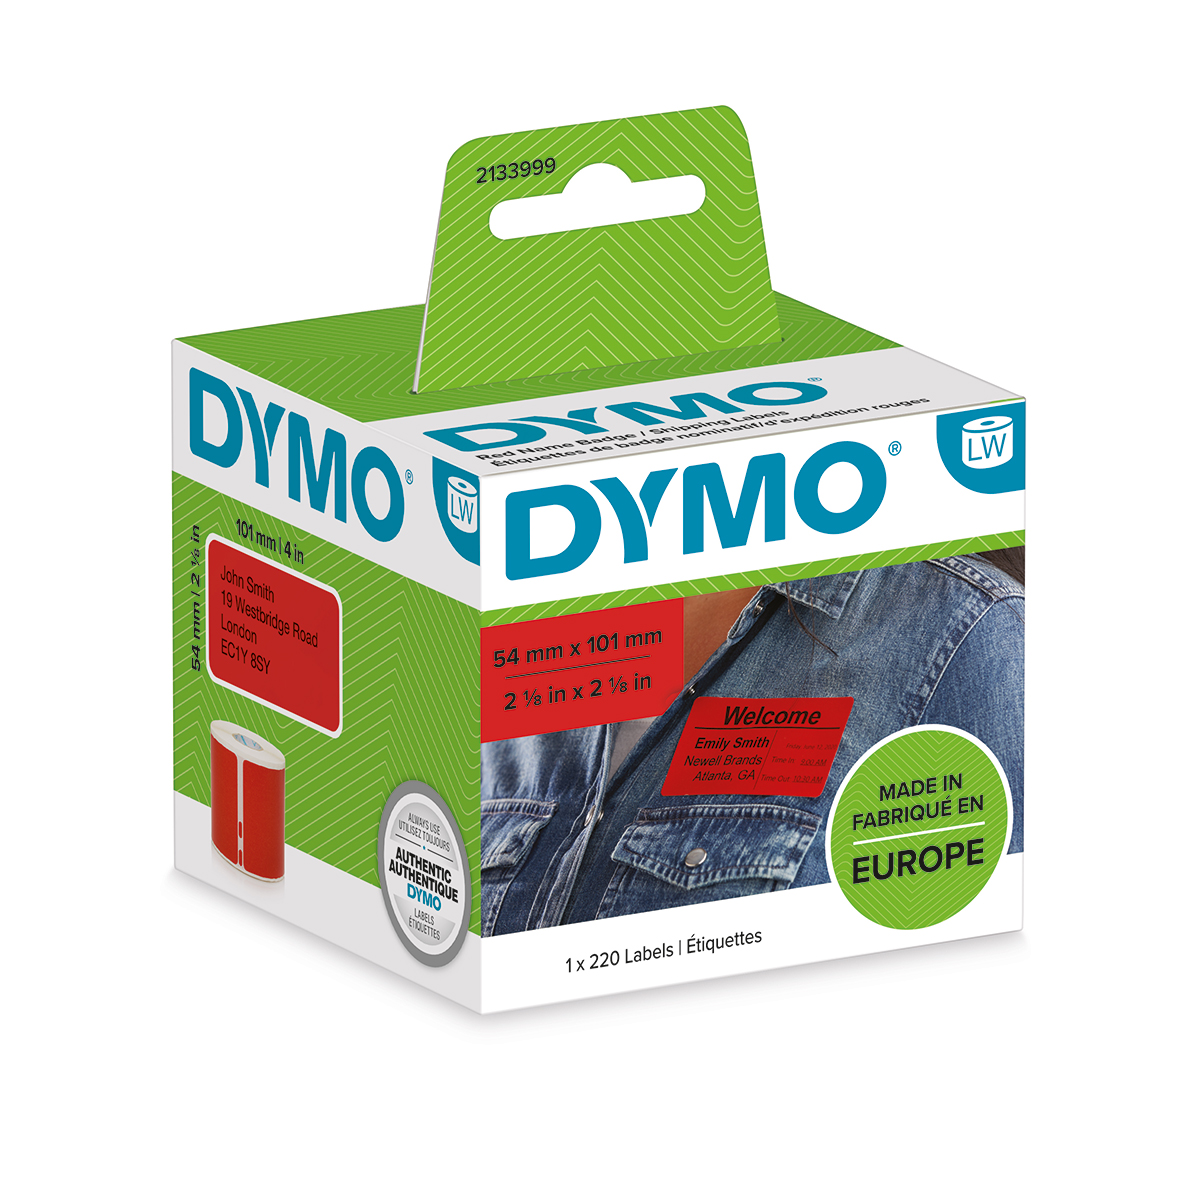 Dymo 2133399 54mm x 101mm Shipping and Name Badge Black on Red